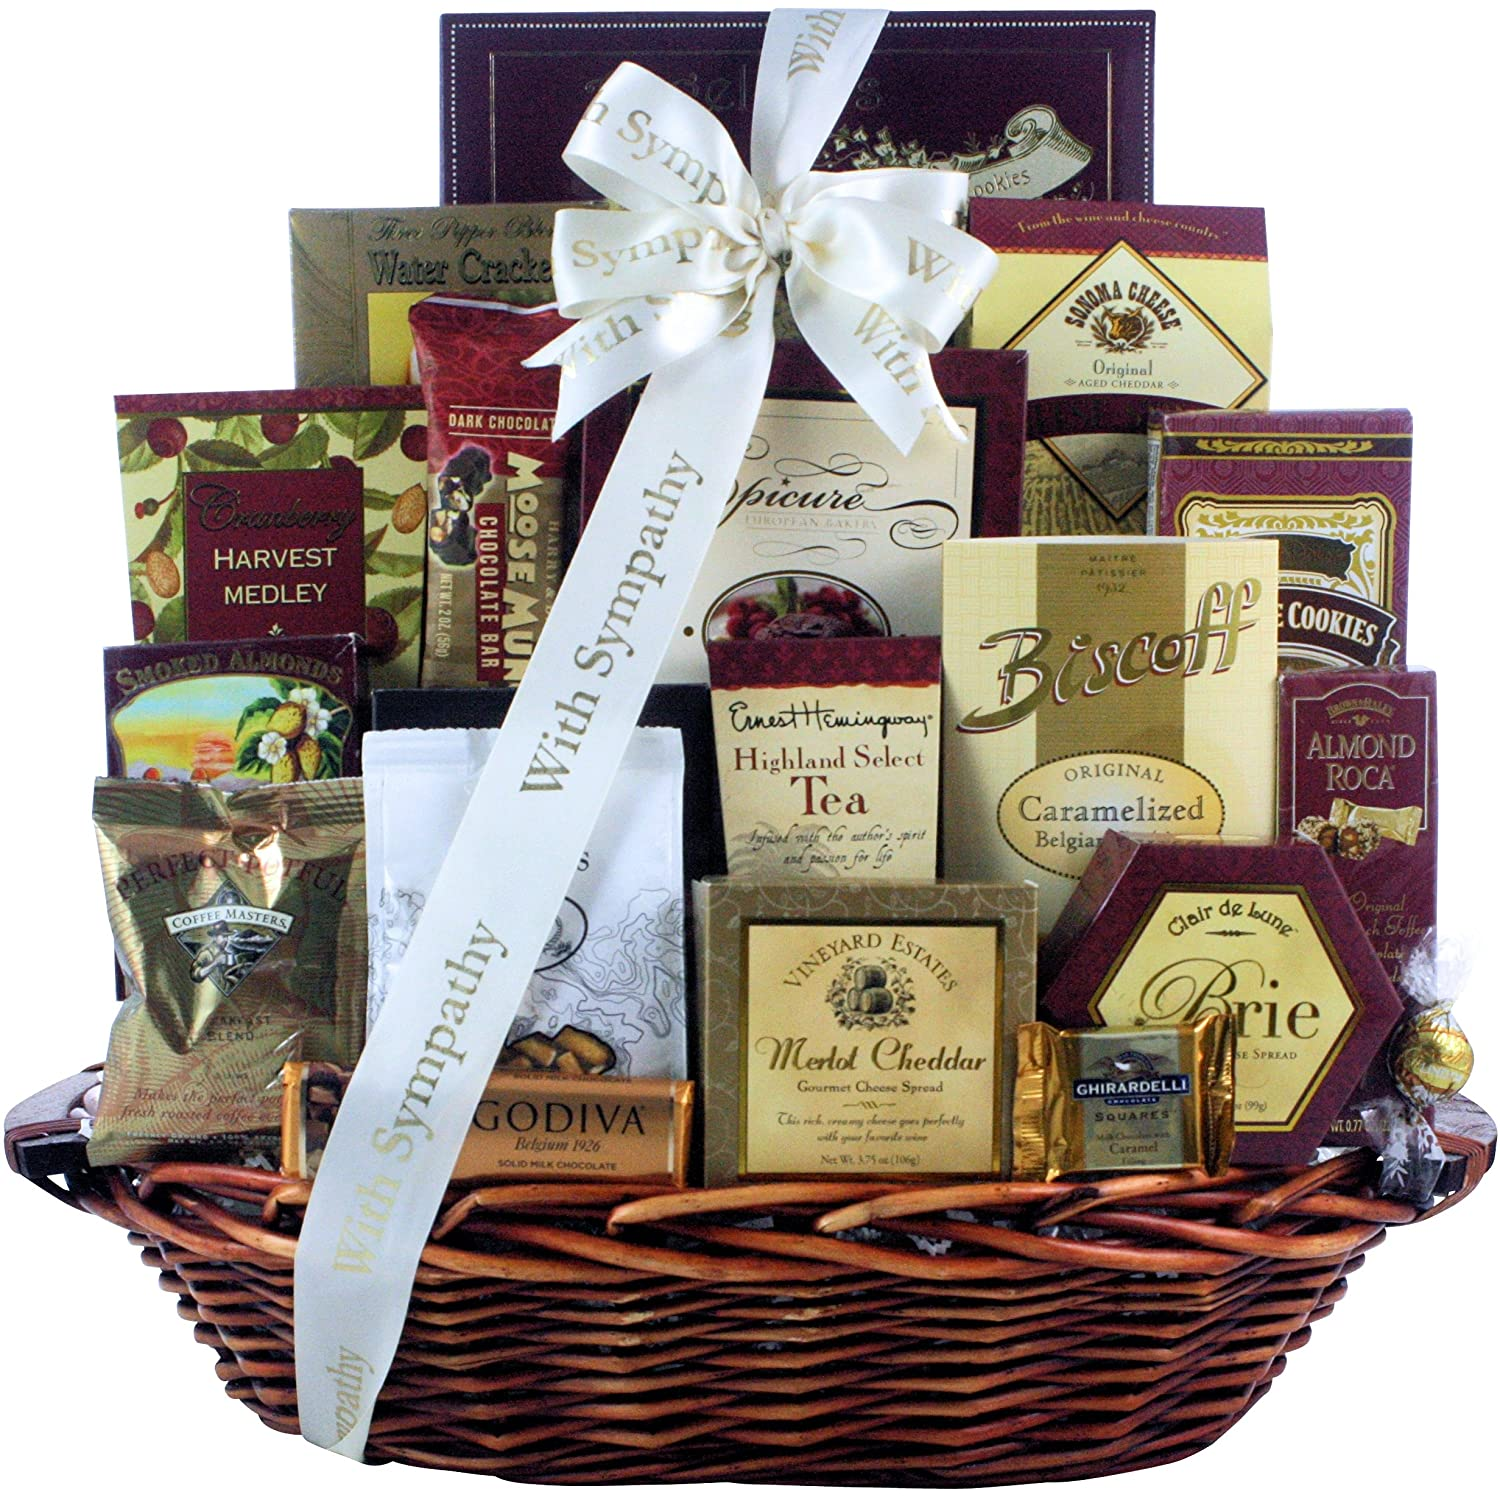 Amazon.com  Great Arrivals Sympathy Gift Basket Our Sincere Condolences  Gourmet Snacks And Hors Doeuvres Gifts  Grocery u0026 Gourmet Food  sc 1 st  Amazon.com & Amazon.com : Great Arrivals Sympathy Gift Basket Our Sincere ...